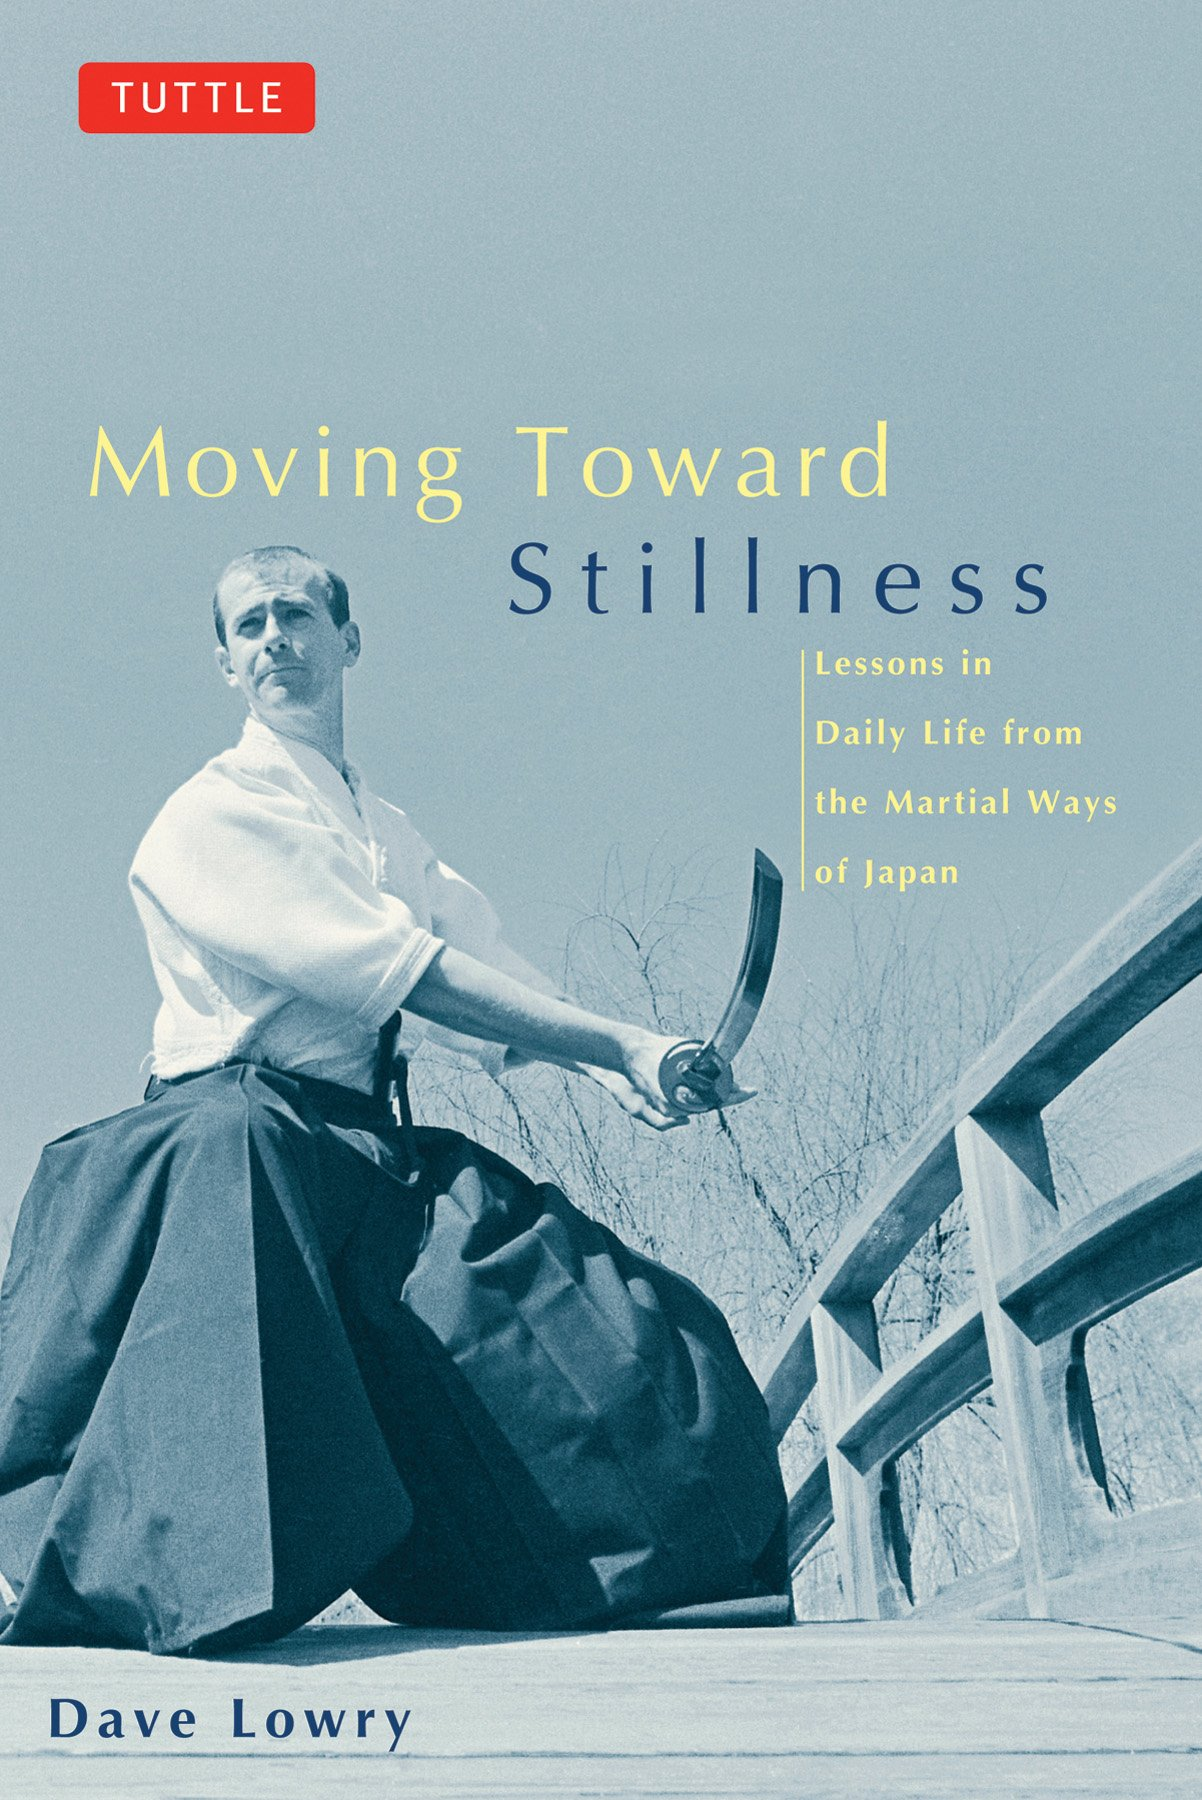 Moving Toward Stillness Moving Toward Stillness: Lessons in Daily Life from the Martial Ways of Japan Lessons in Daily Life from the Martial Ways of J